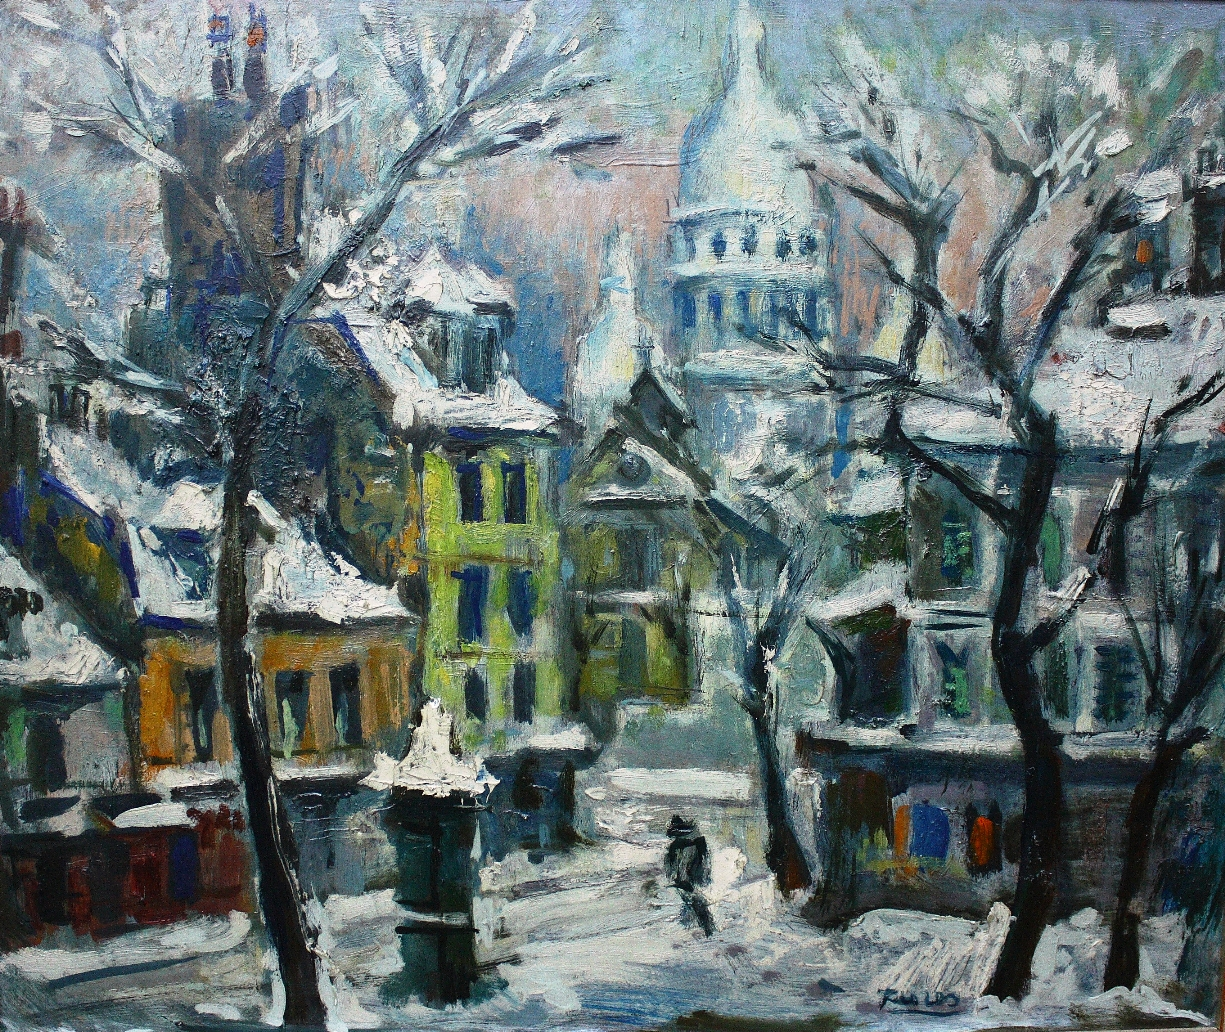 Paris nevado 45 x 55